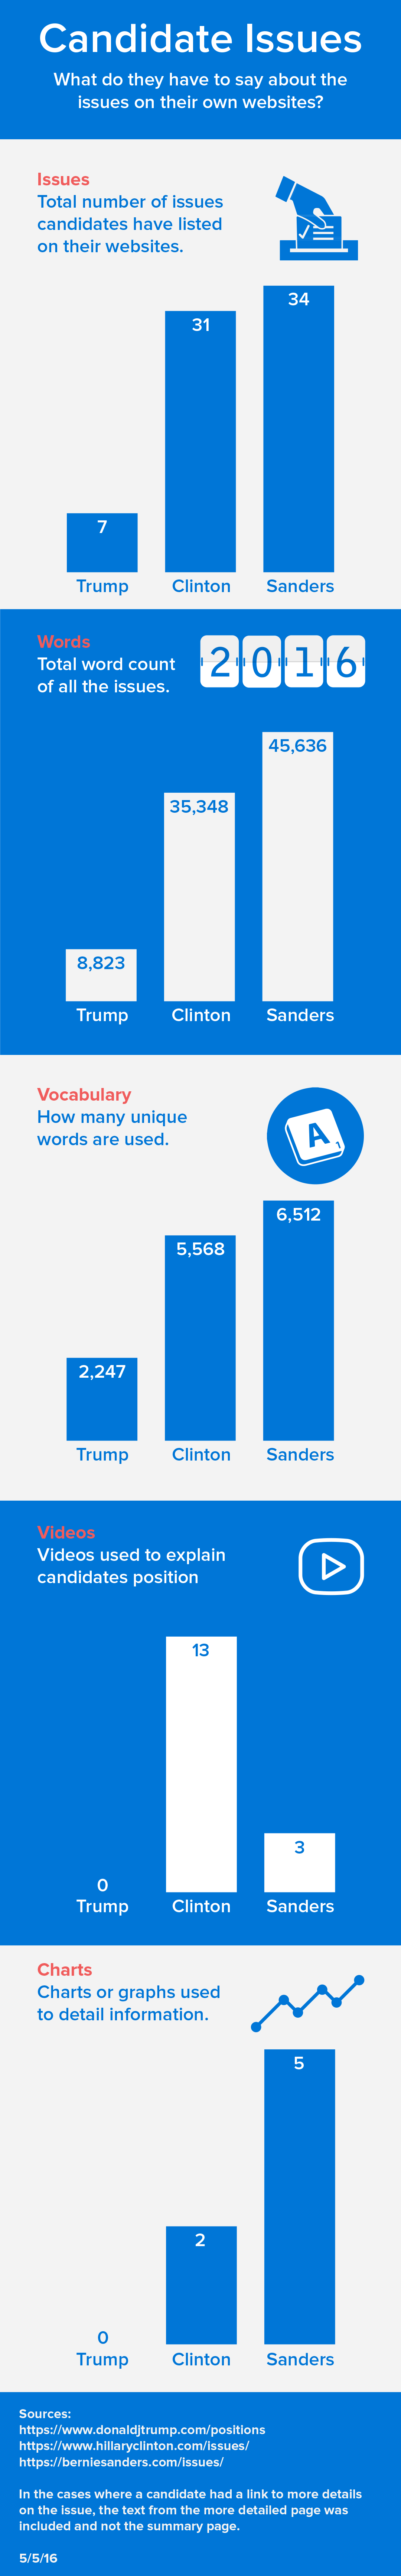 2016 Presidential Candidates — analysis of their issues on their websites and word usage